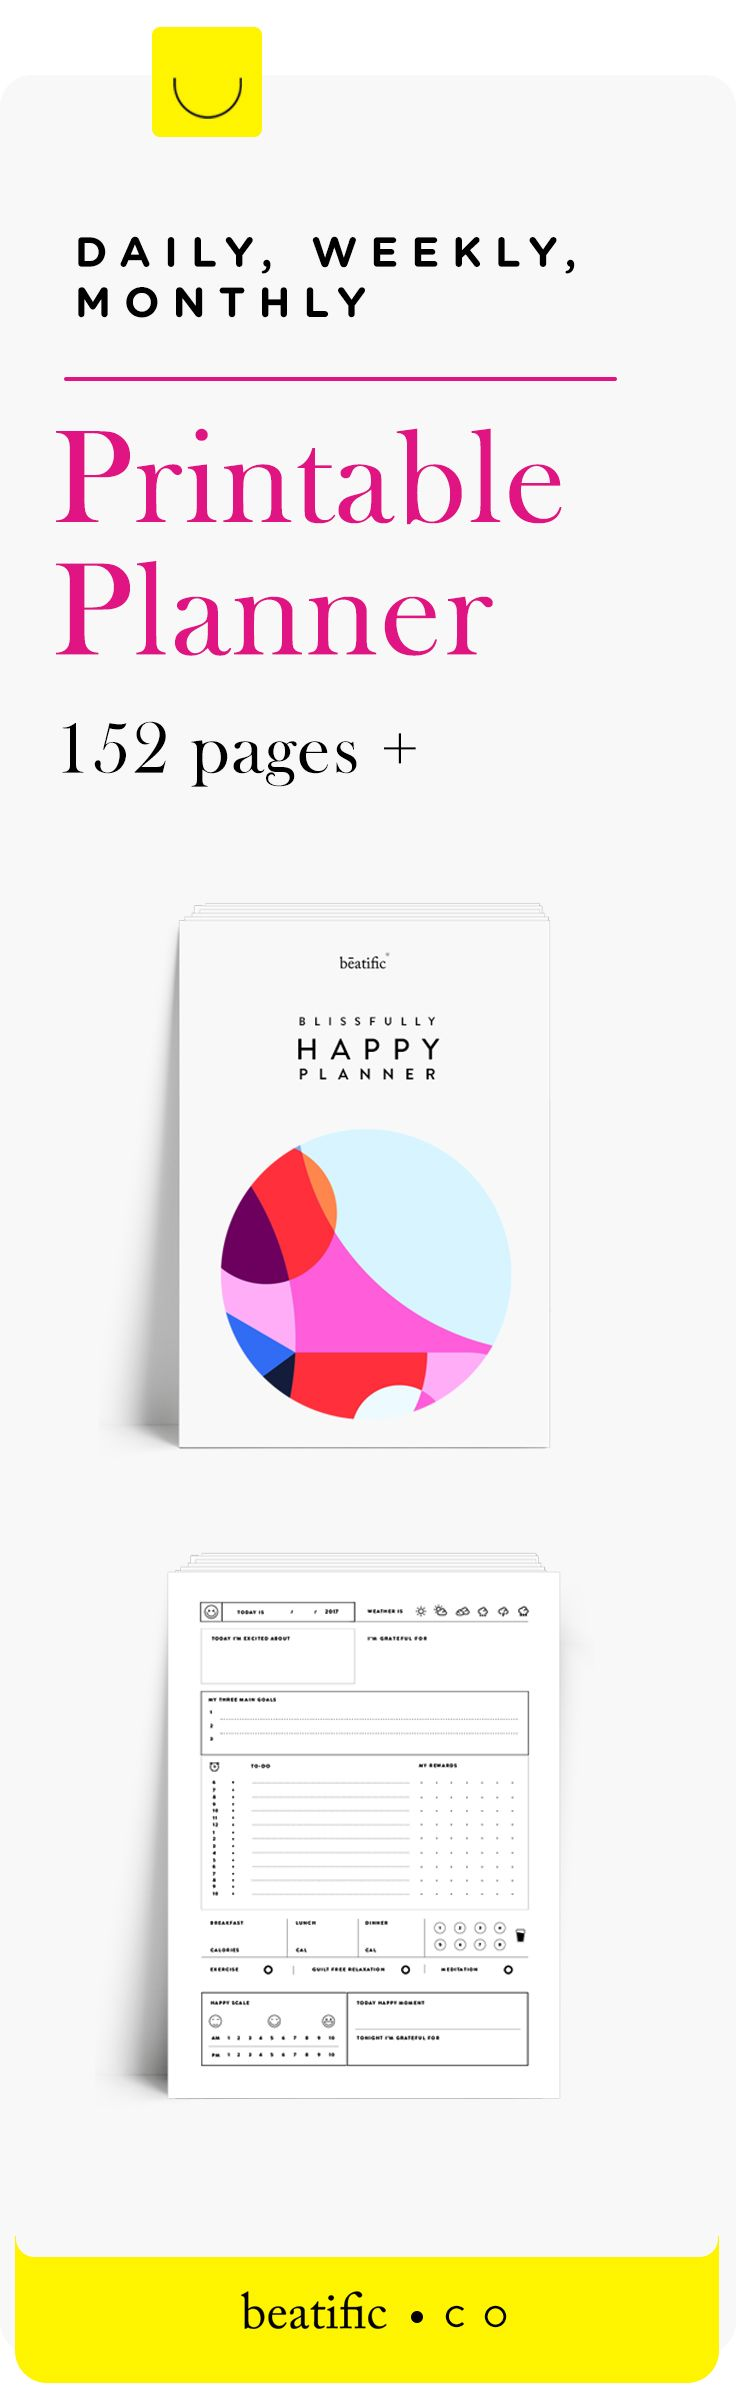 Daily, Weekly and Monthly Happy Printable Planner to get your life back on track. #plannerprintables #plannerinserts #plannerprintable #printableplanner #plannerrefill #personalinserts